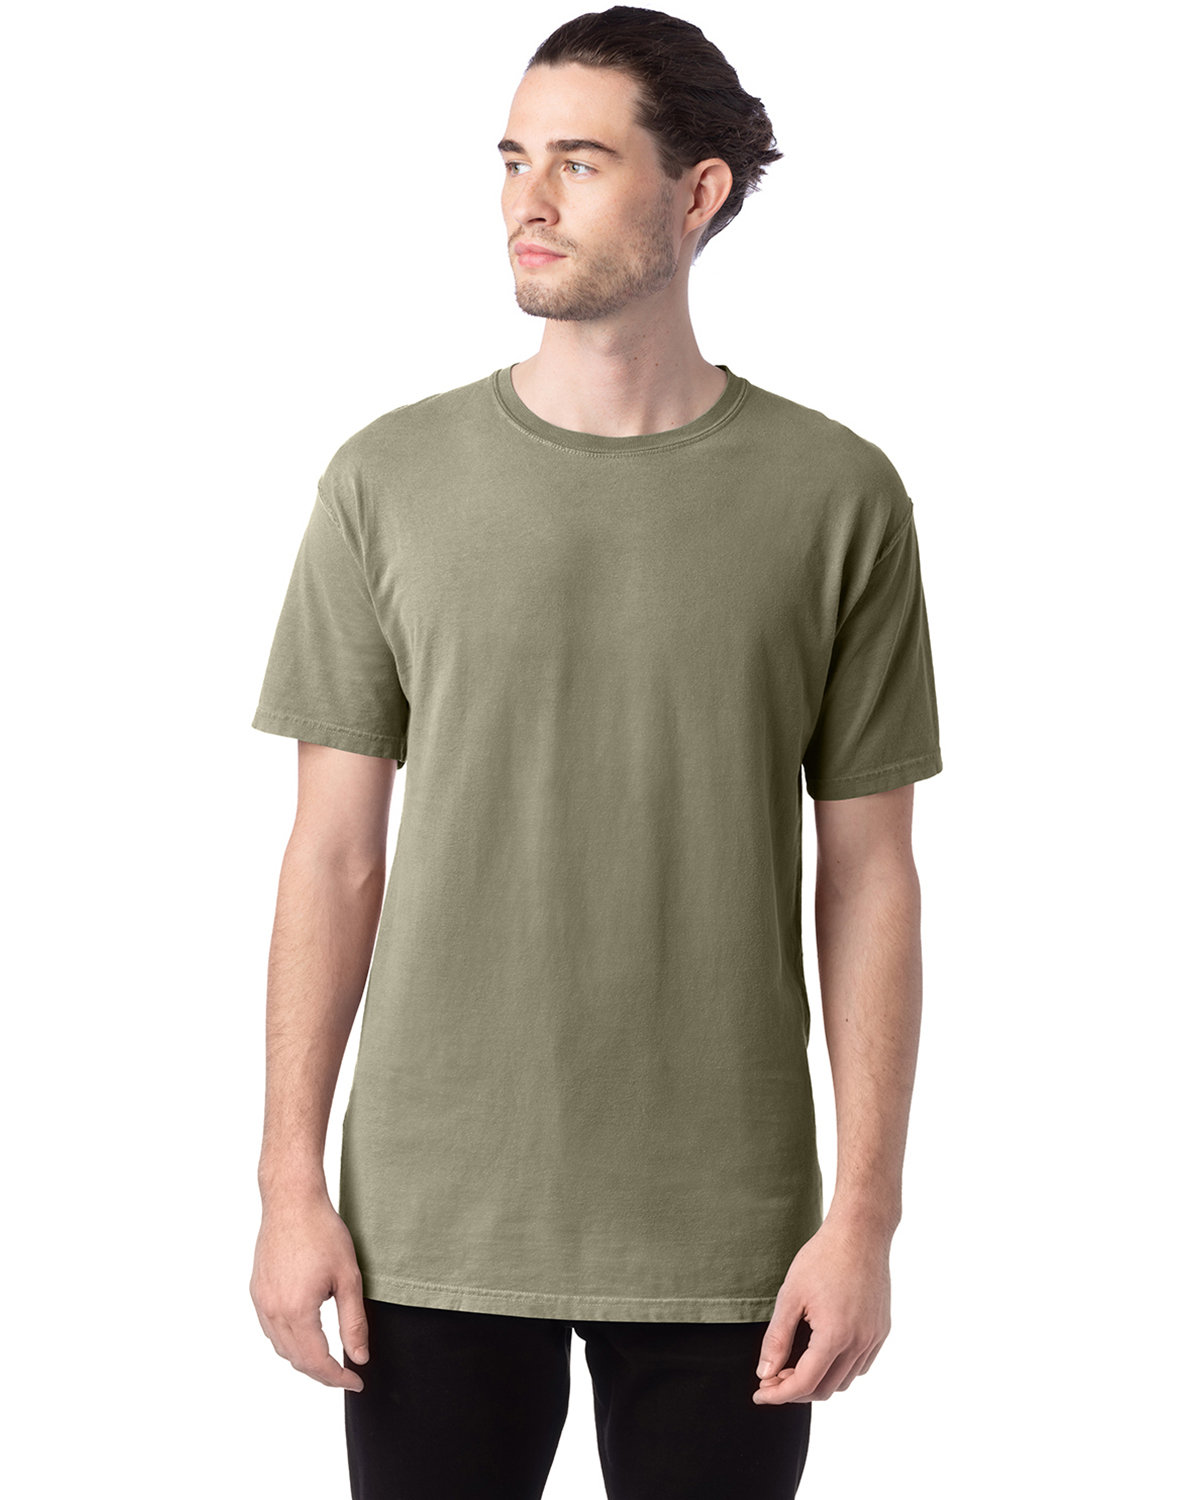 ComfortWash by Hanes Men's Garment-Dyed T-Shirt FADED FATIGUE